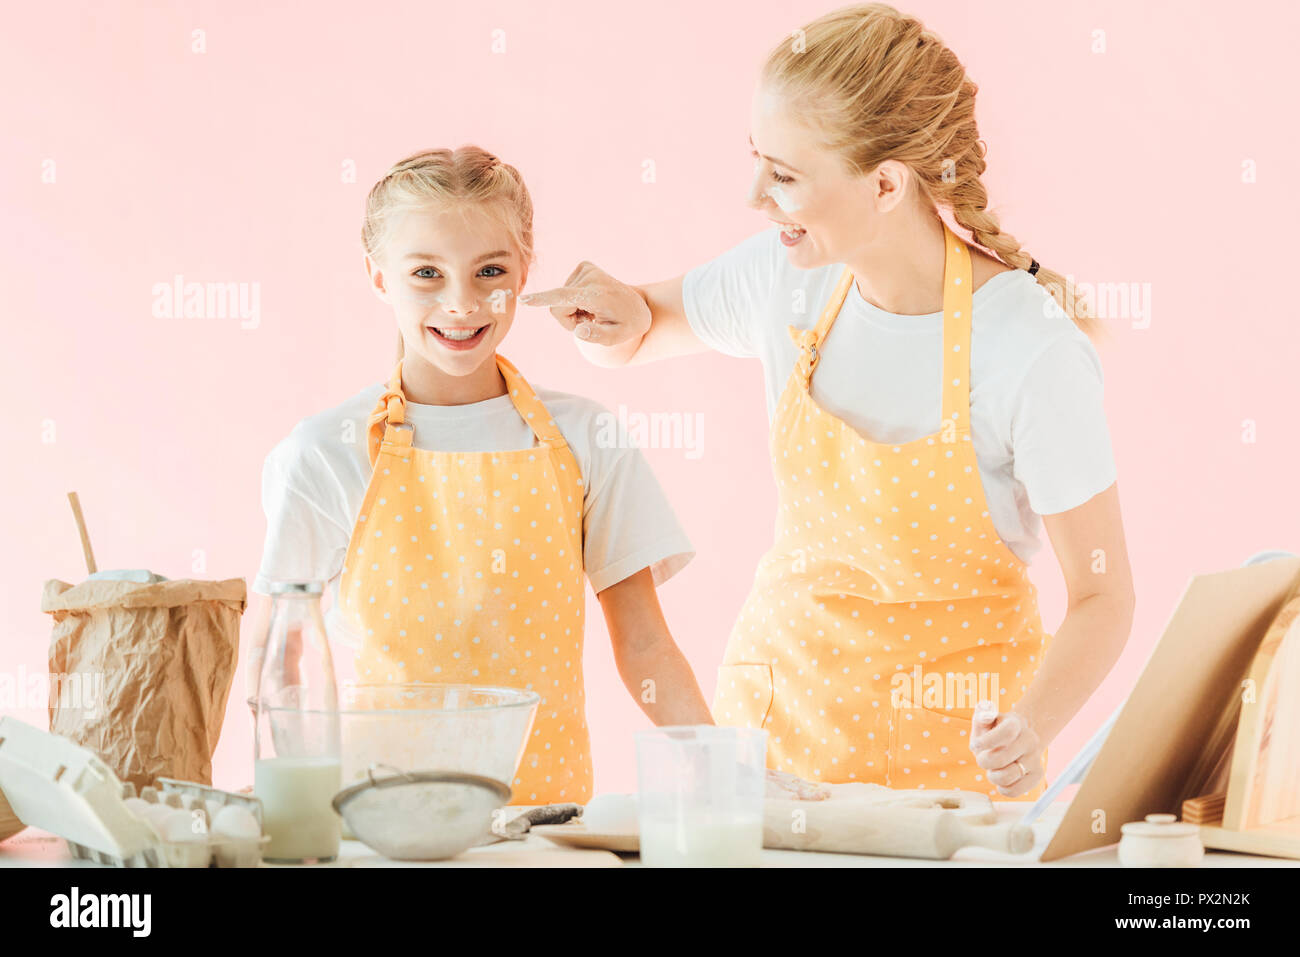 smiling mother and daughter with flour on faces cooking together isolated on pink - Stock Image